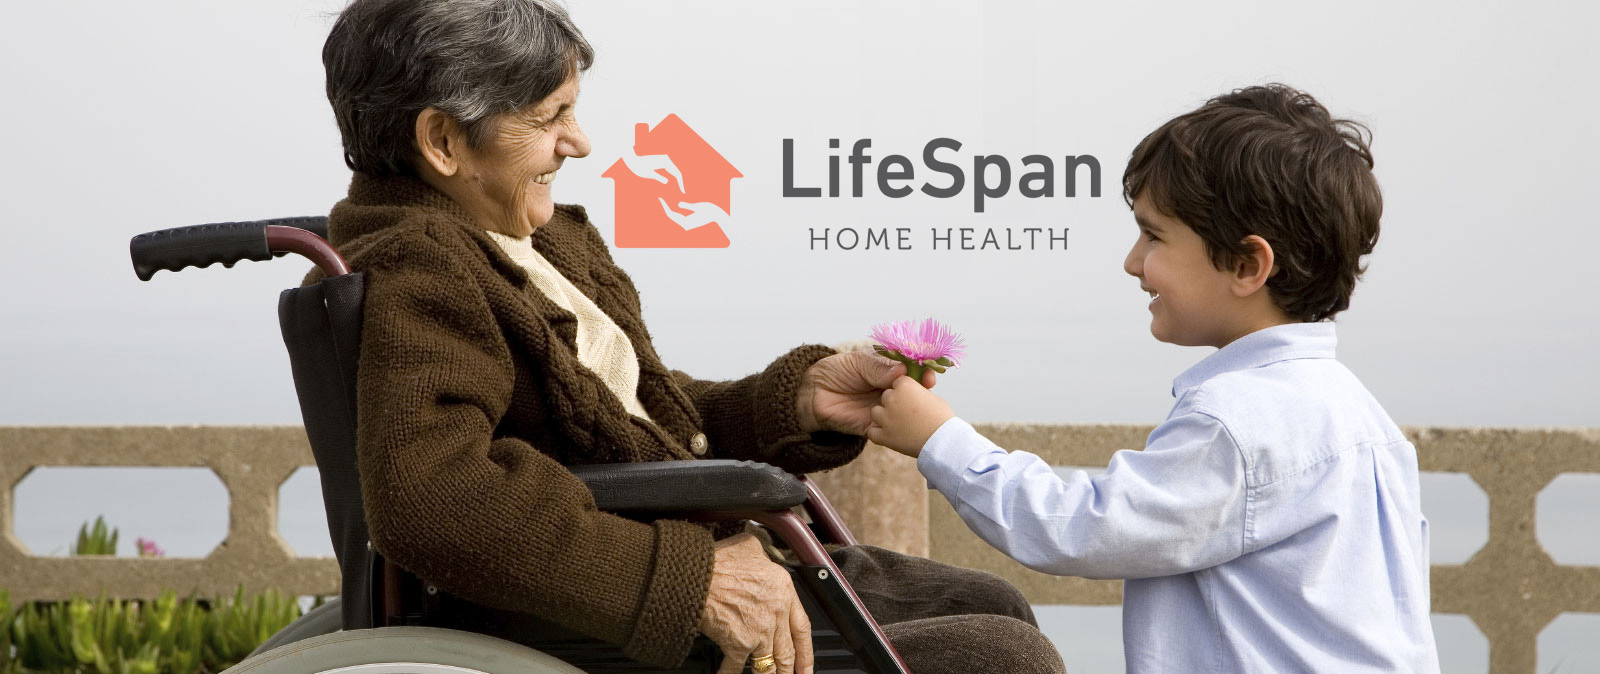 LifeSpan Home Health